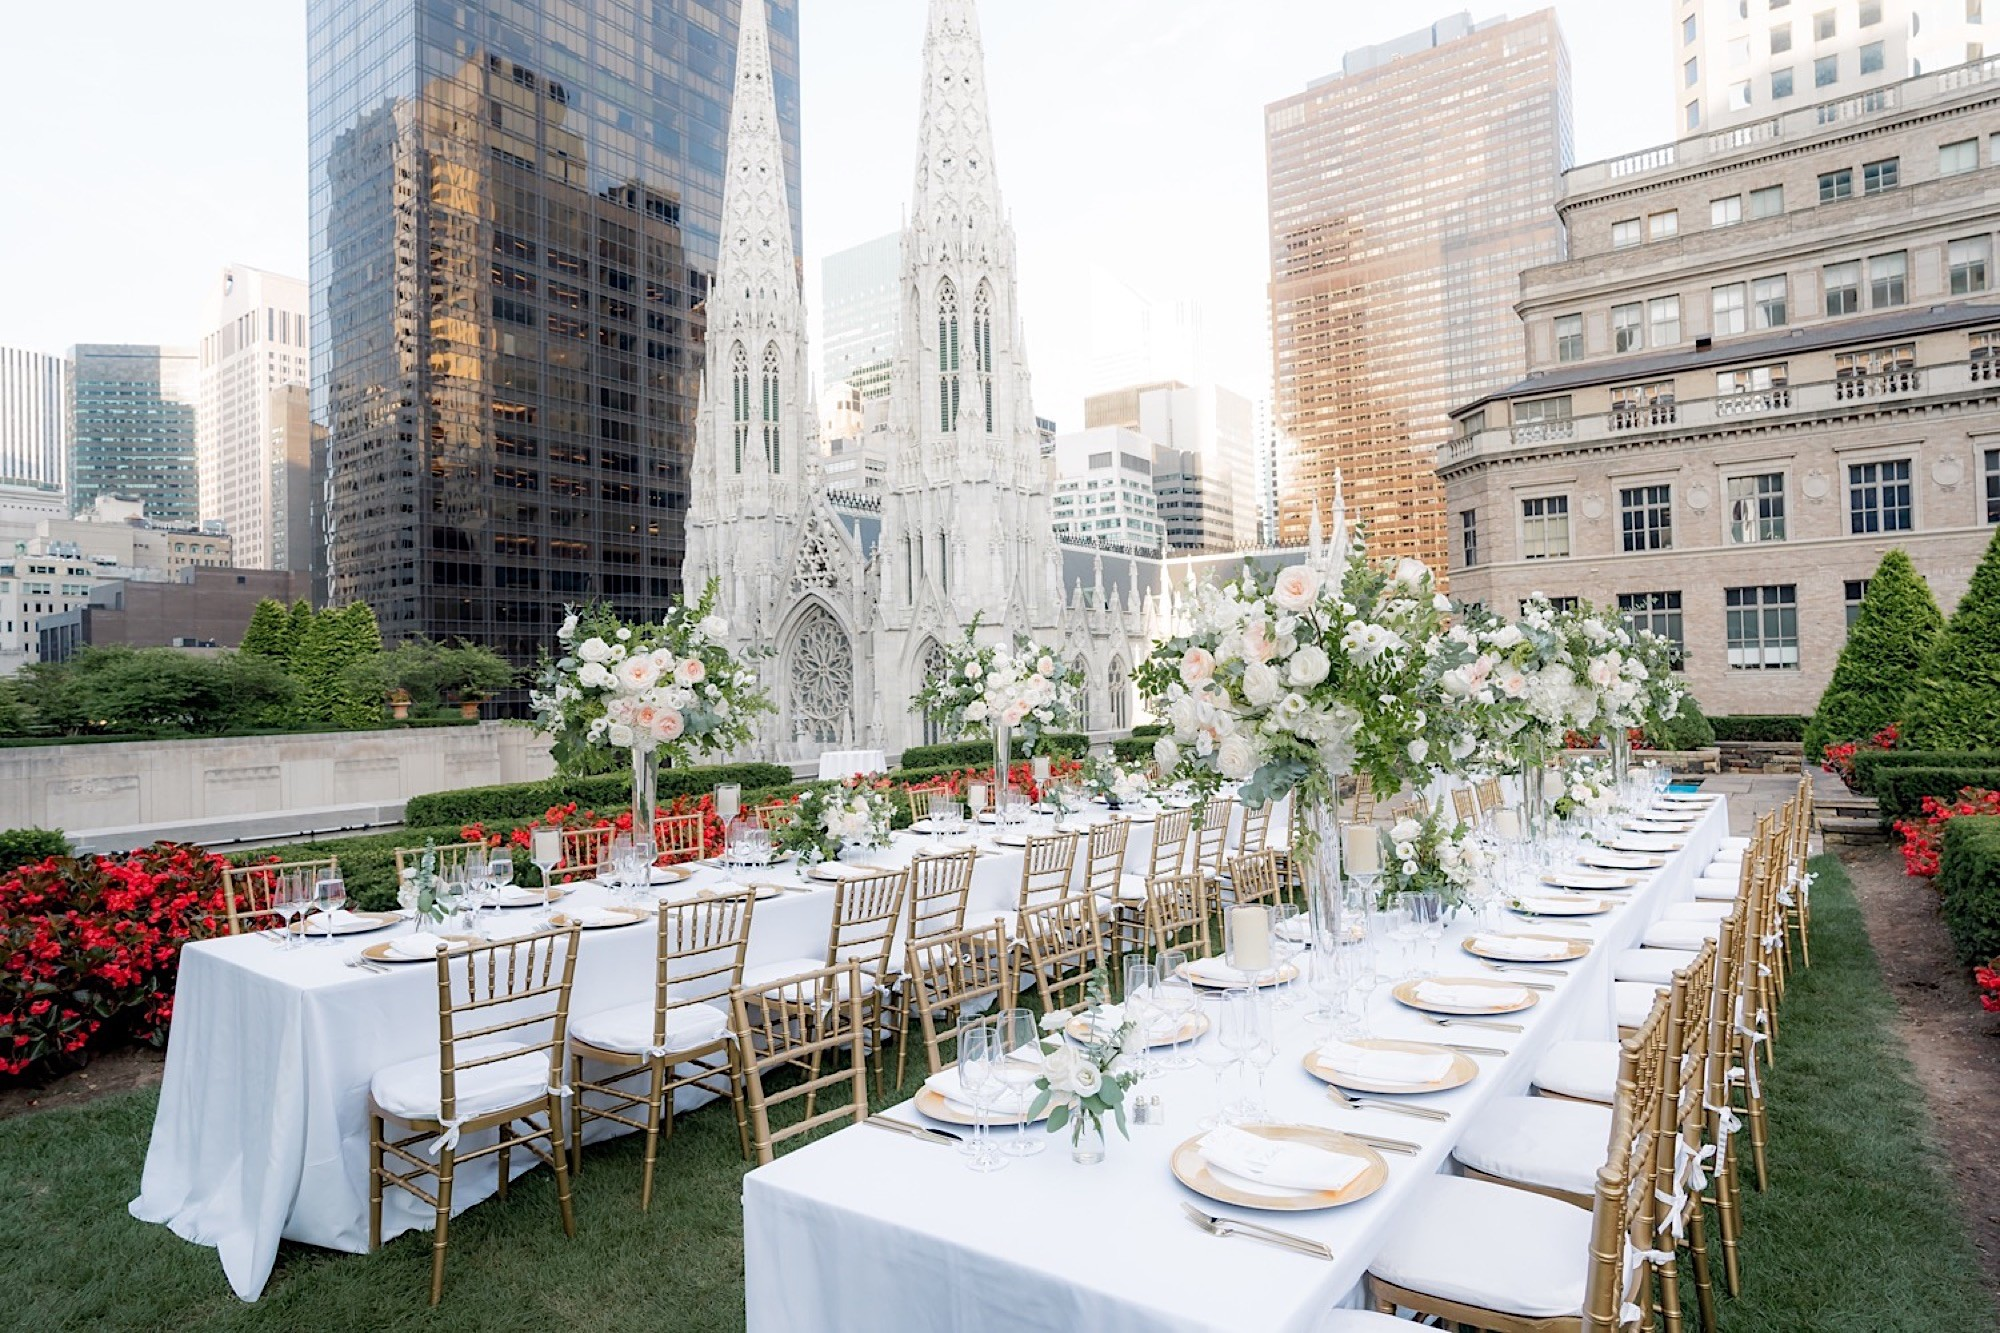 Rainbow Room Weddings in New York City